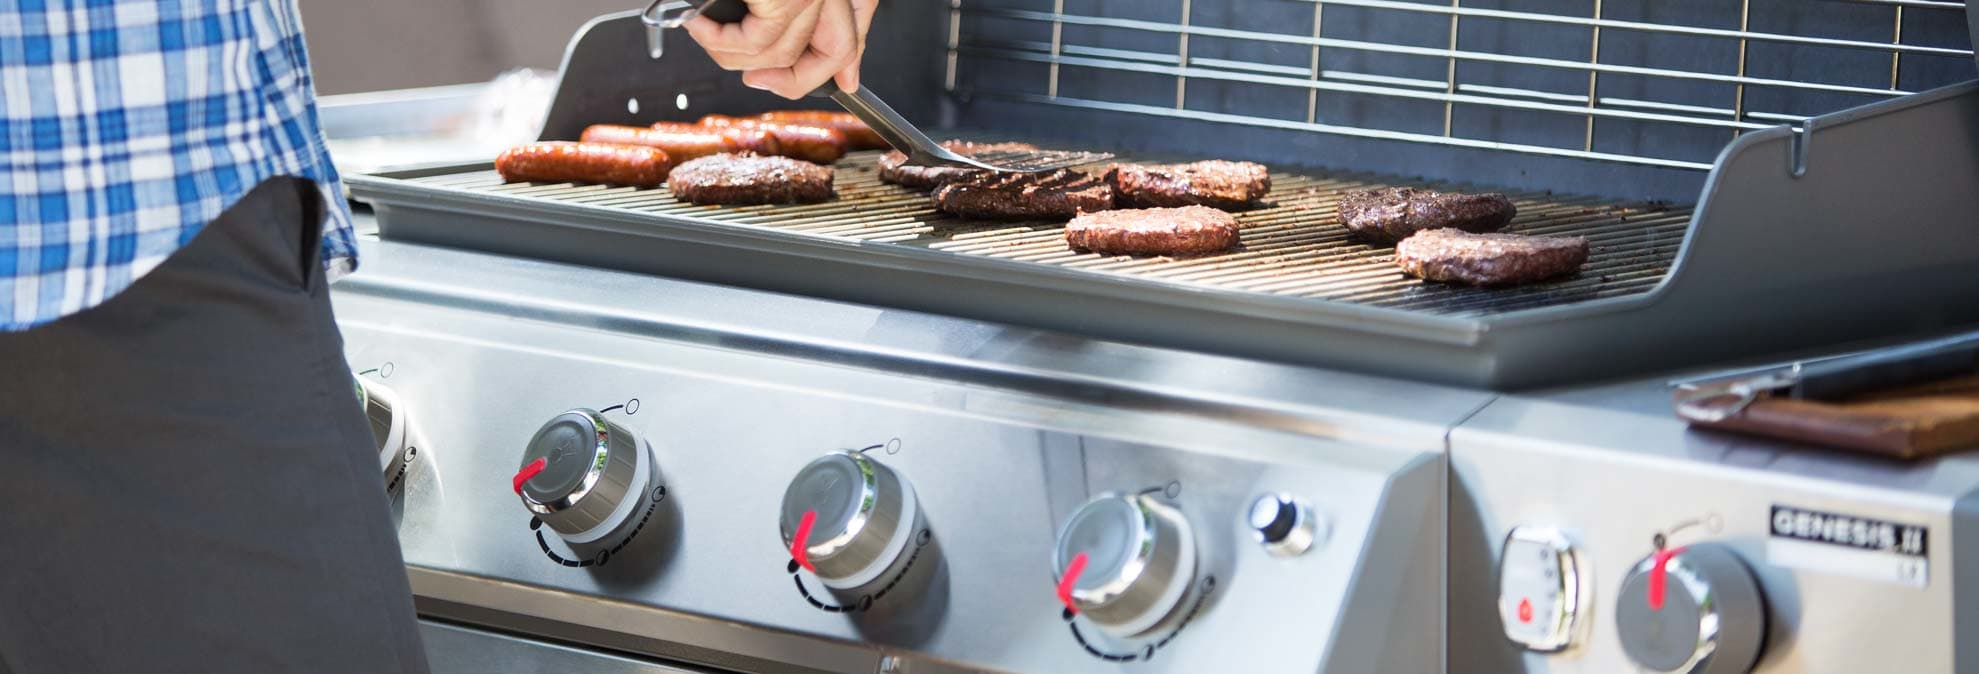 Why Now Is the Right Time to Buy a Gas Grill